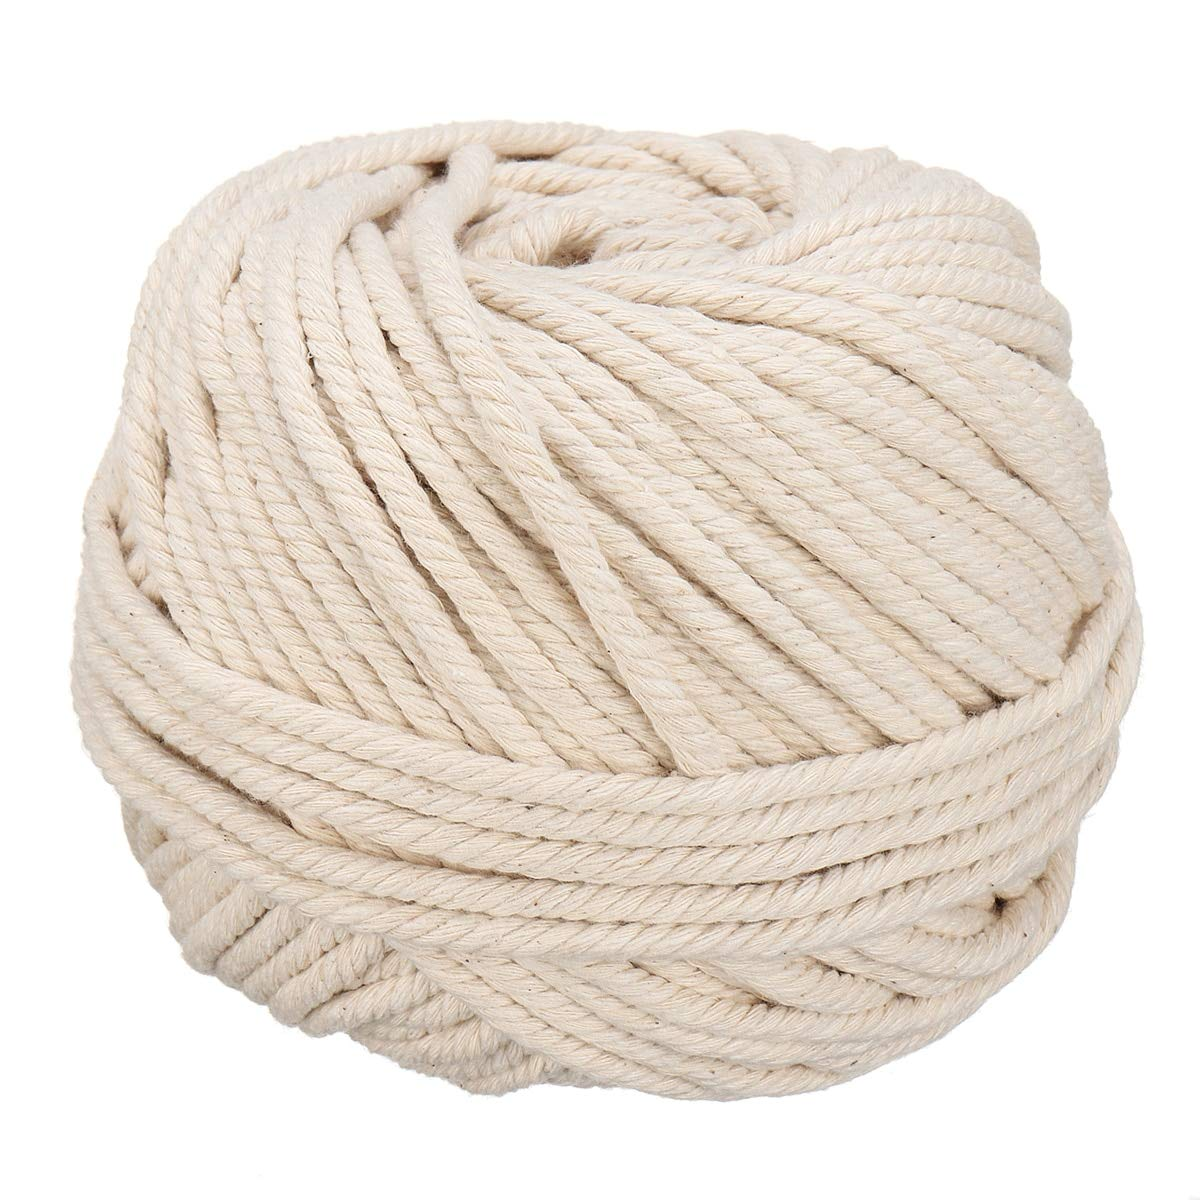 Cotton Rope 1 Roll Rope Natural Beige Pure Cotton Twisted Cord For Artisan Hand Craft Diy Apparel Sewing Rope 5Mm X 60M by Mehtah Store